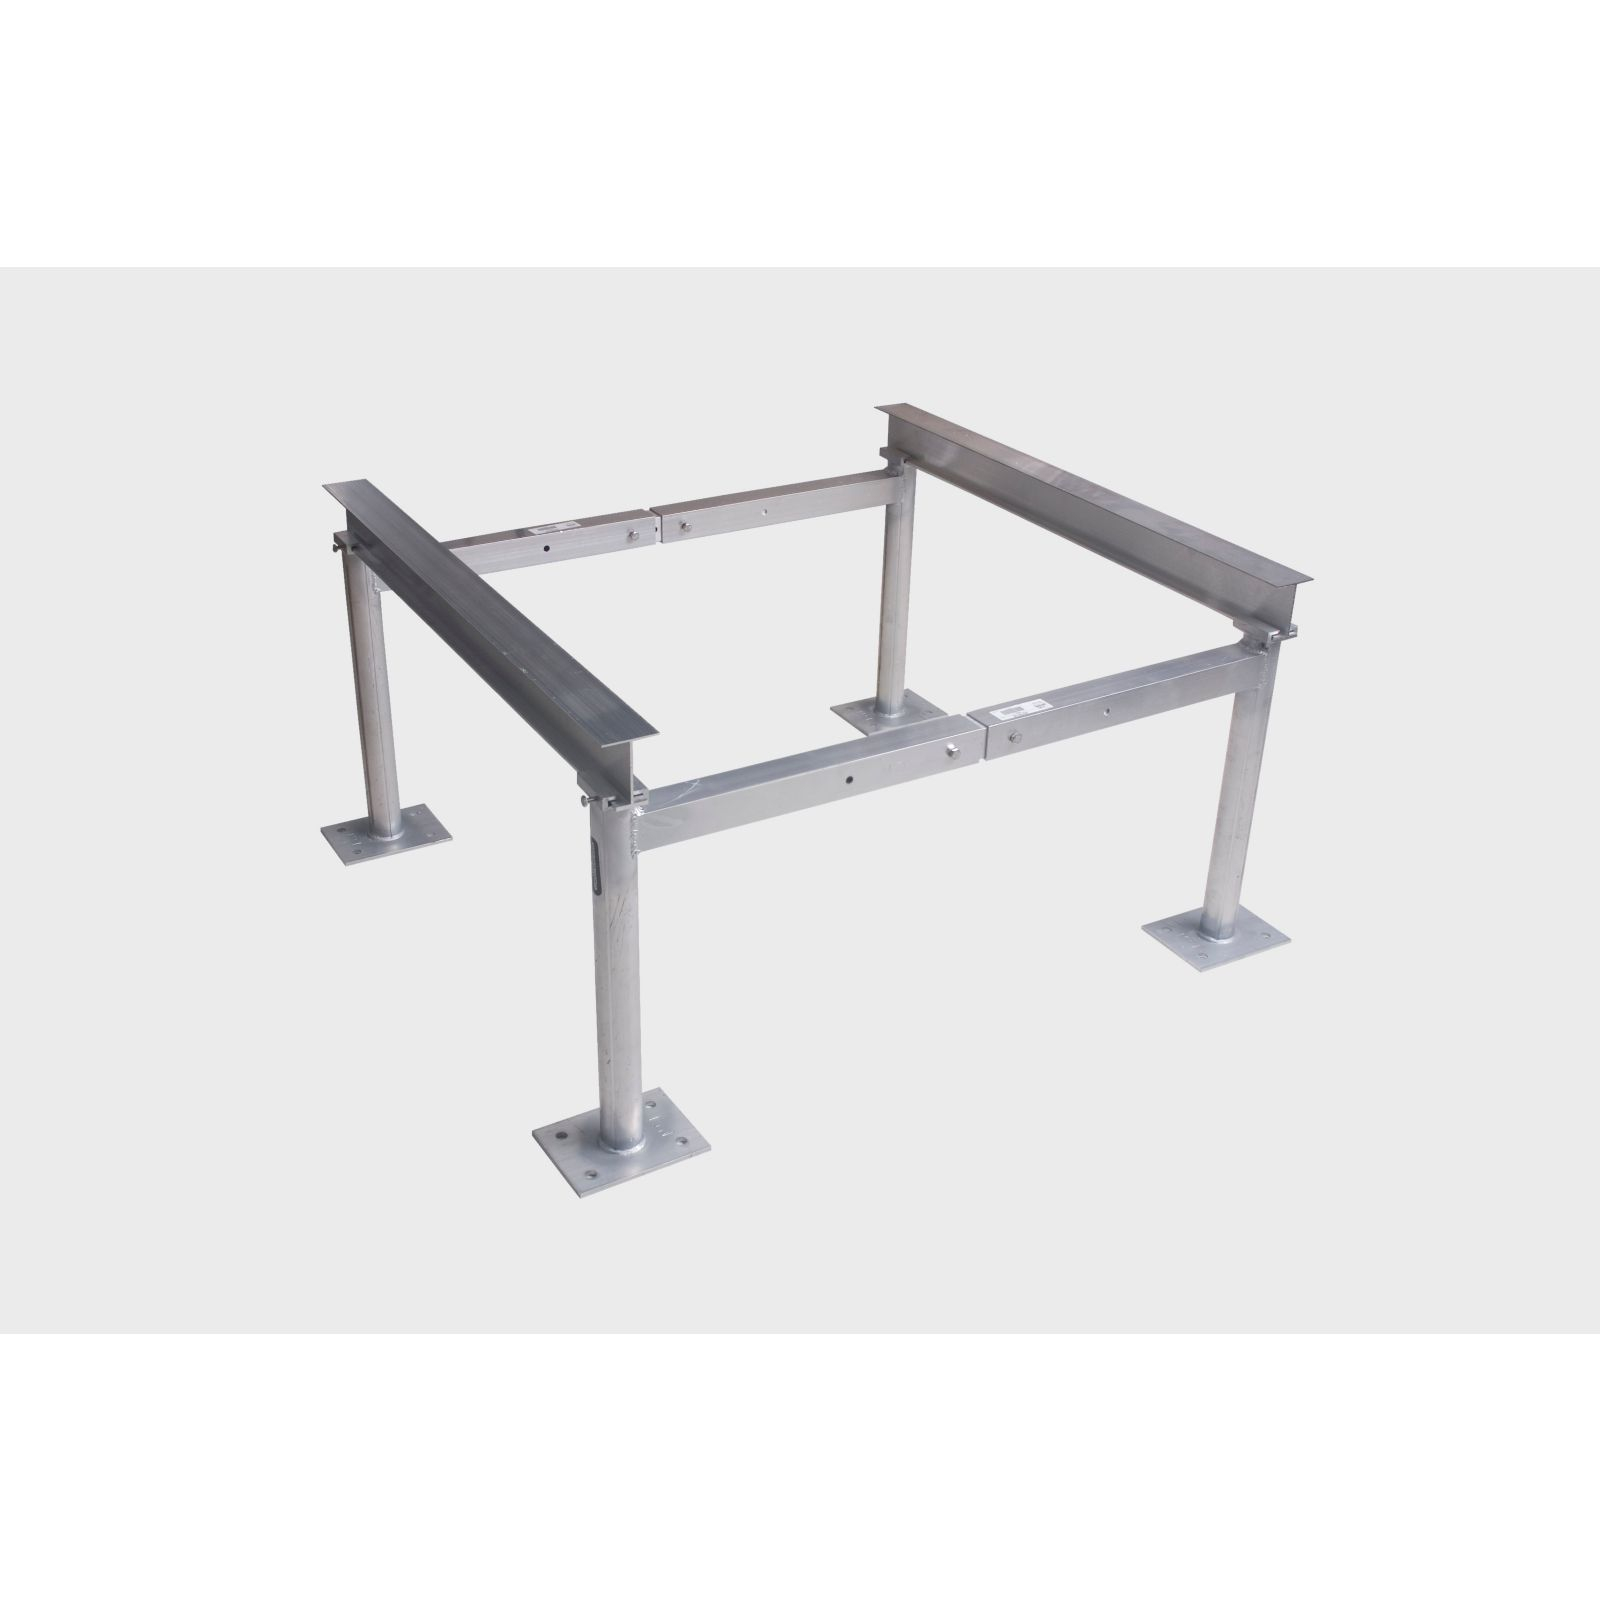 "Miami Tech AS10H30 - Aluminum Condensing Unit Stand Heavy Duty Leg Assembly, 30"" Tall, 20-30"" spread"